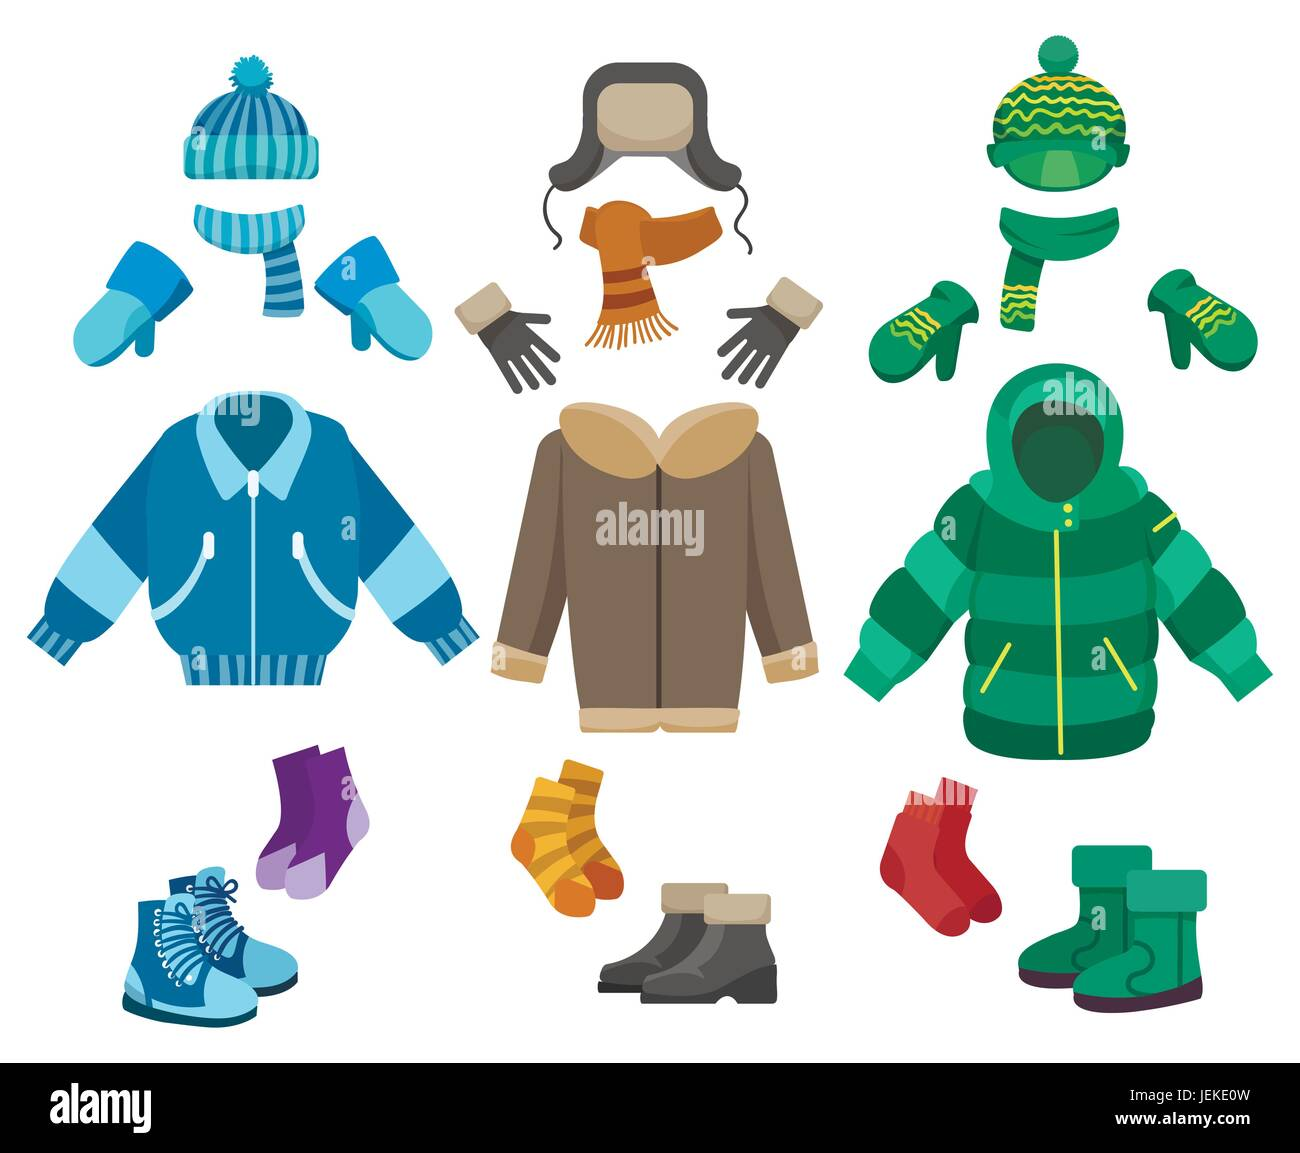 ffdaa3c4ec Male winter clothing isolated on white background. Cold weather clothes  collection for boys vector illustration